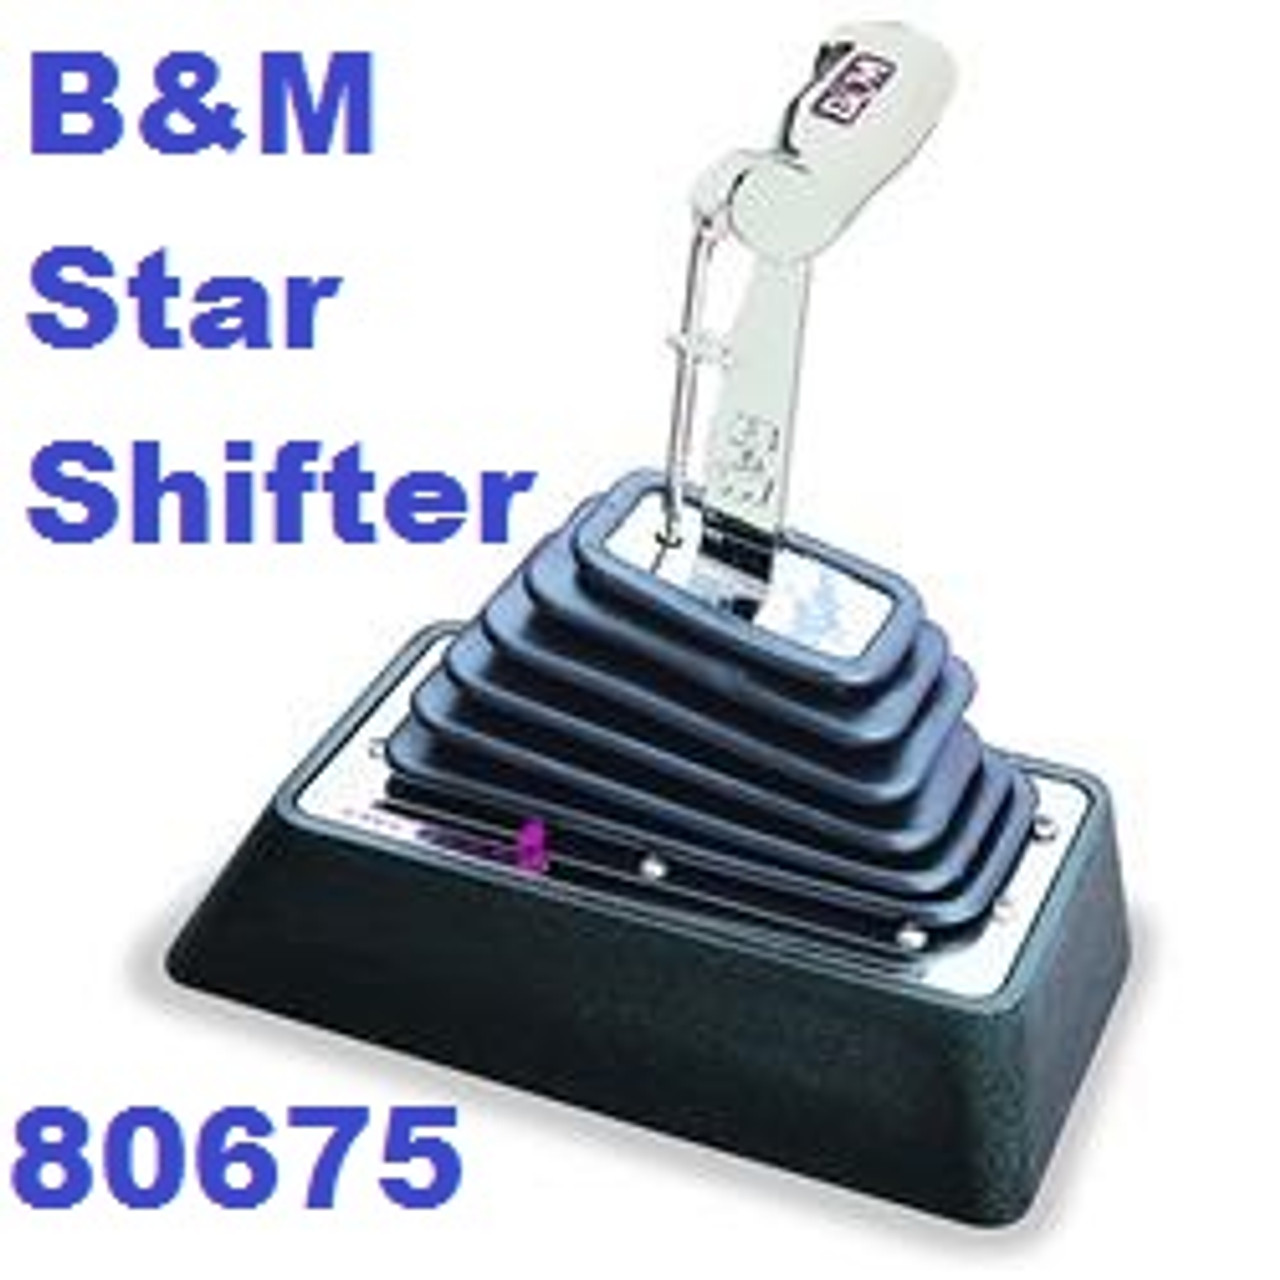 B&M StarShifters 3 Speed Automatic Transmissions 80675 FREE SHIPPING